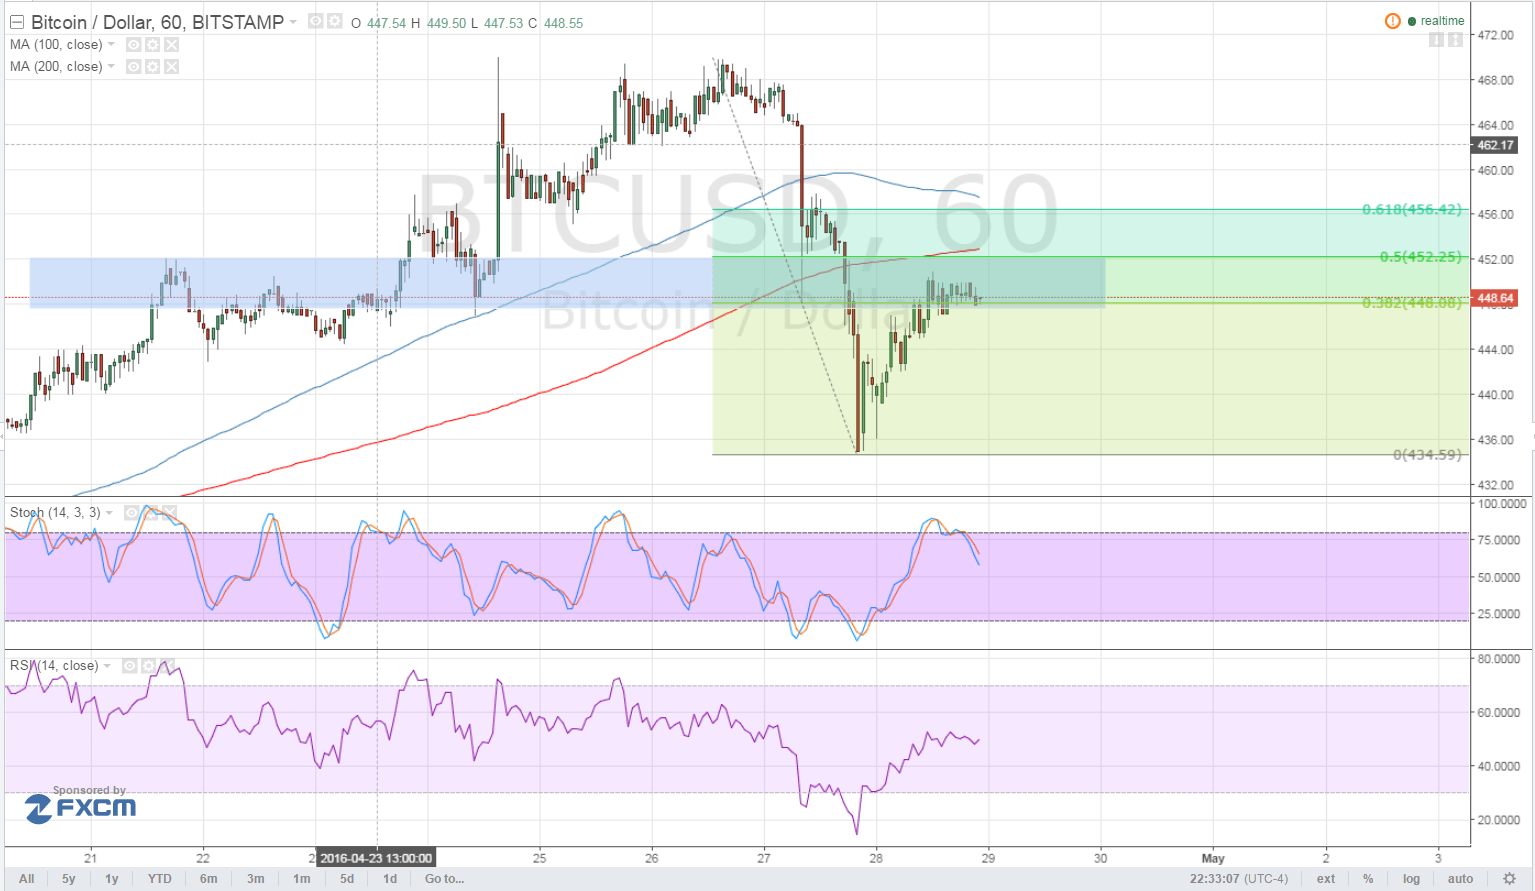 Bitcoin Price Technical Analysis for 04/29/2016 - Bears Getting Stronger?